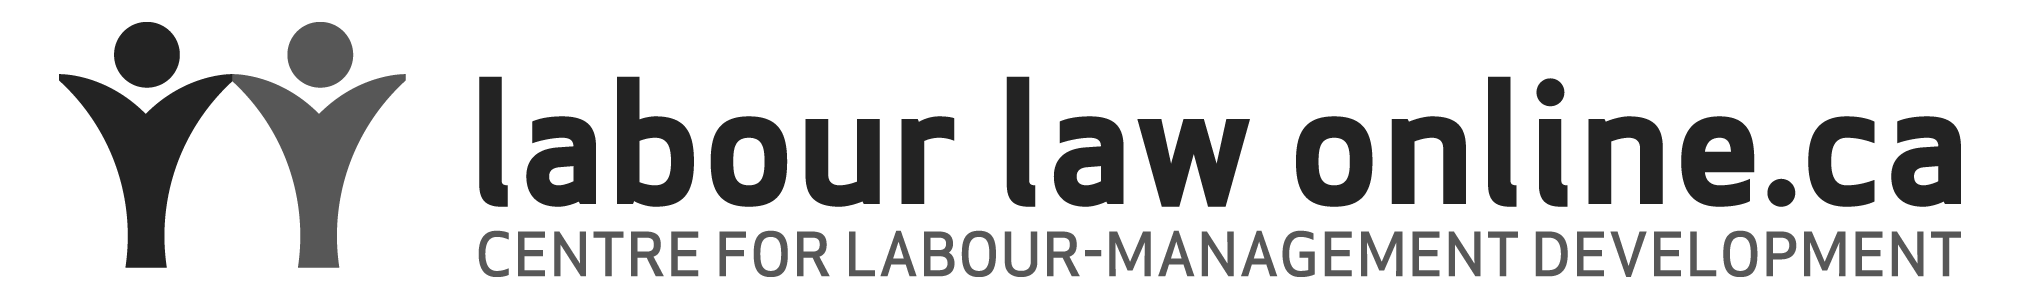 Labourlawonline.ca - centre for labour-management development